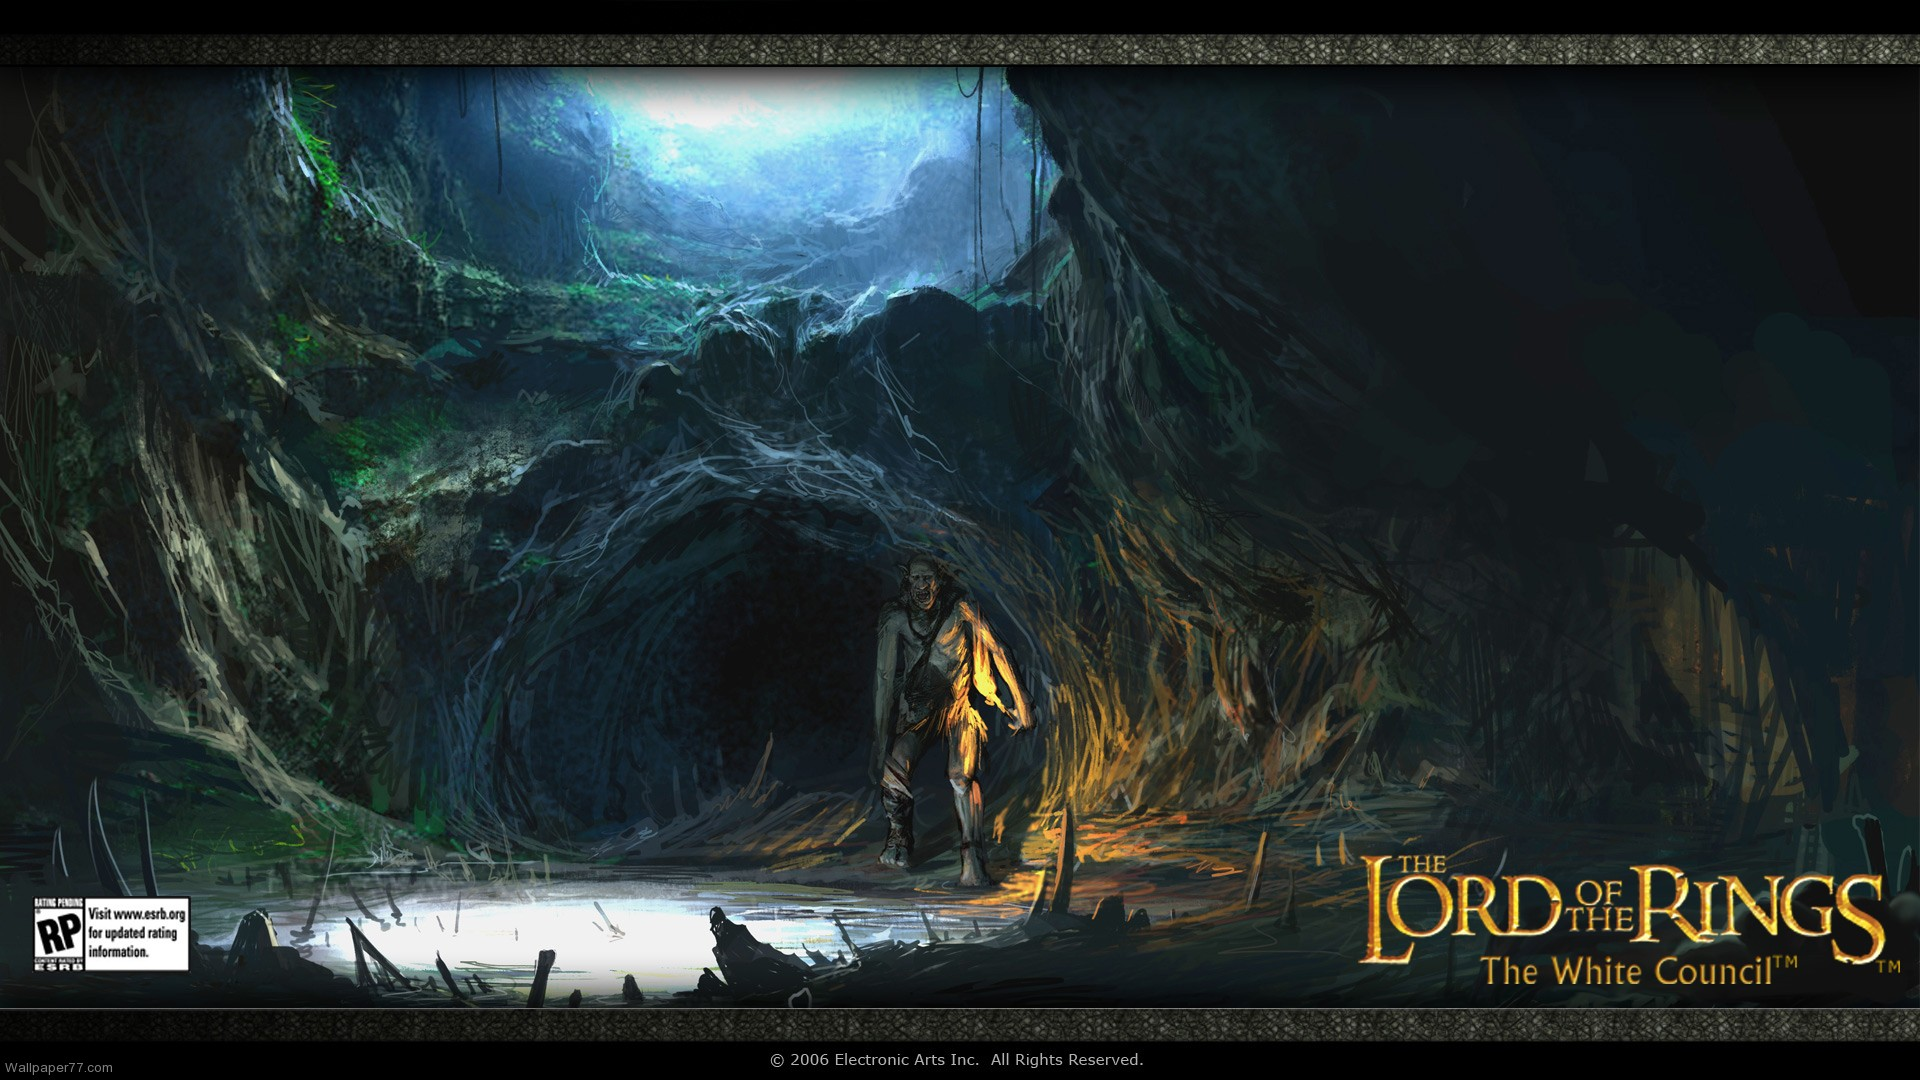 Lord-of-the-Rings-Wallpaper-3-lord-of-the-rings-wallpaperslord-of-the ...